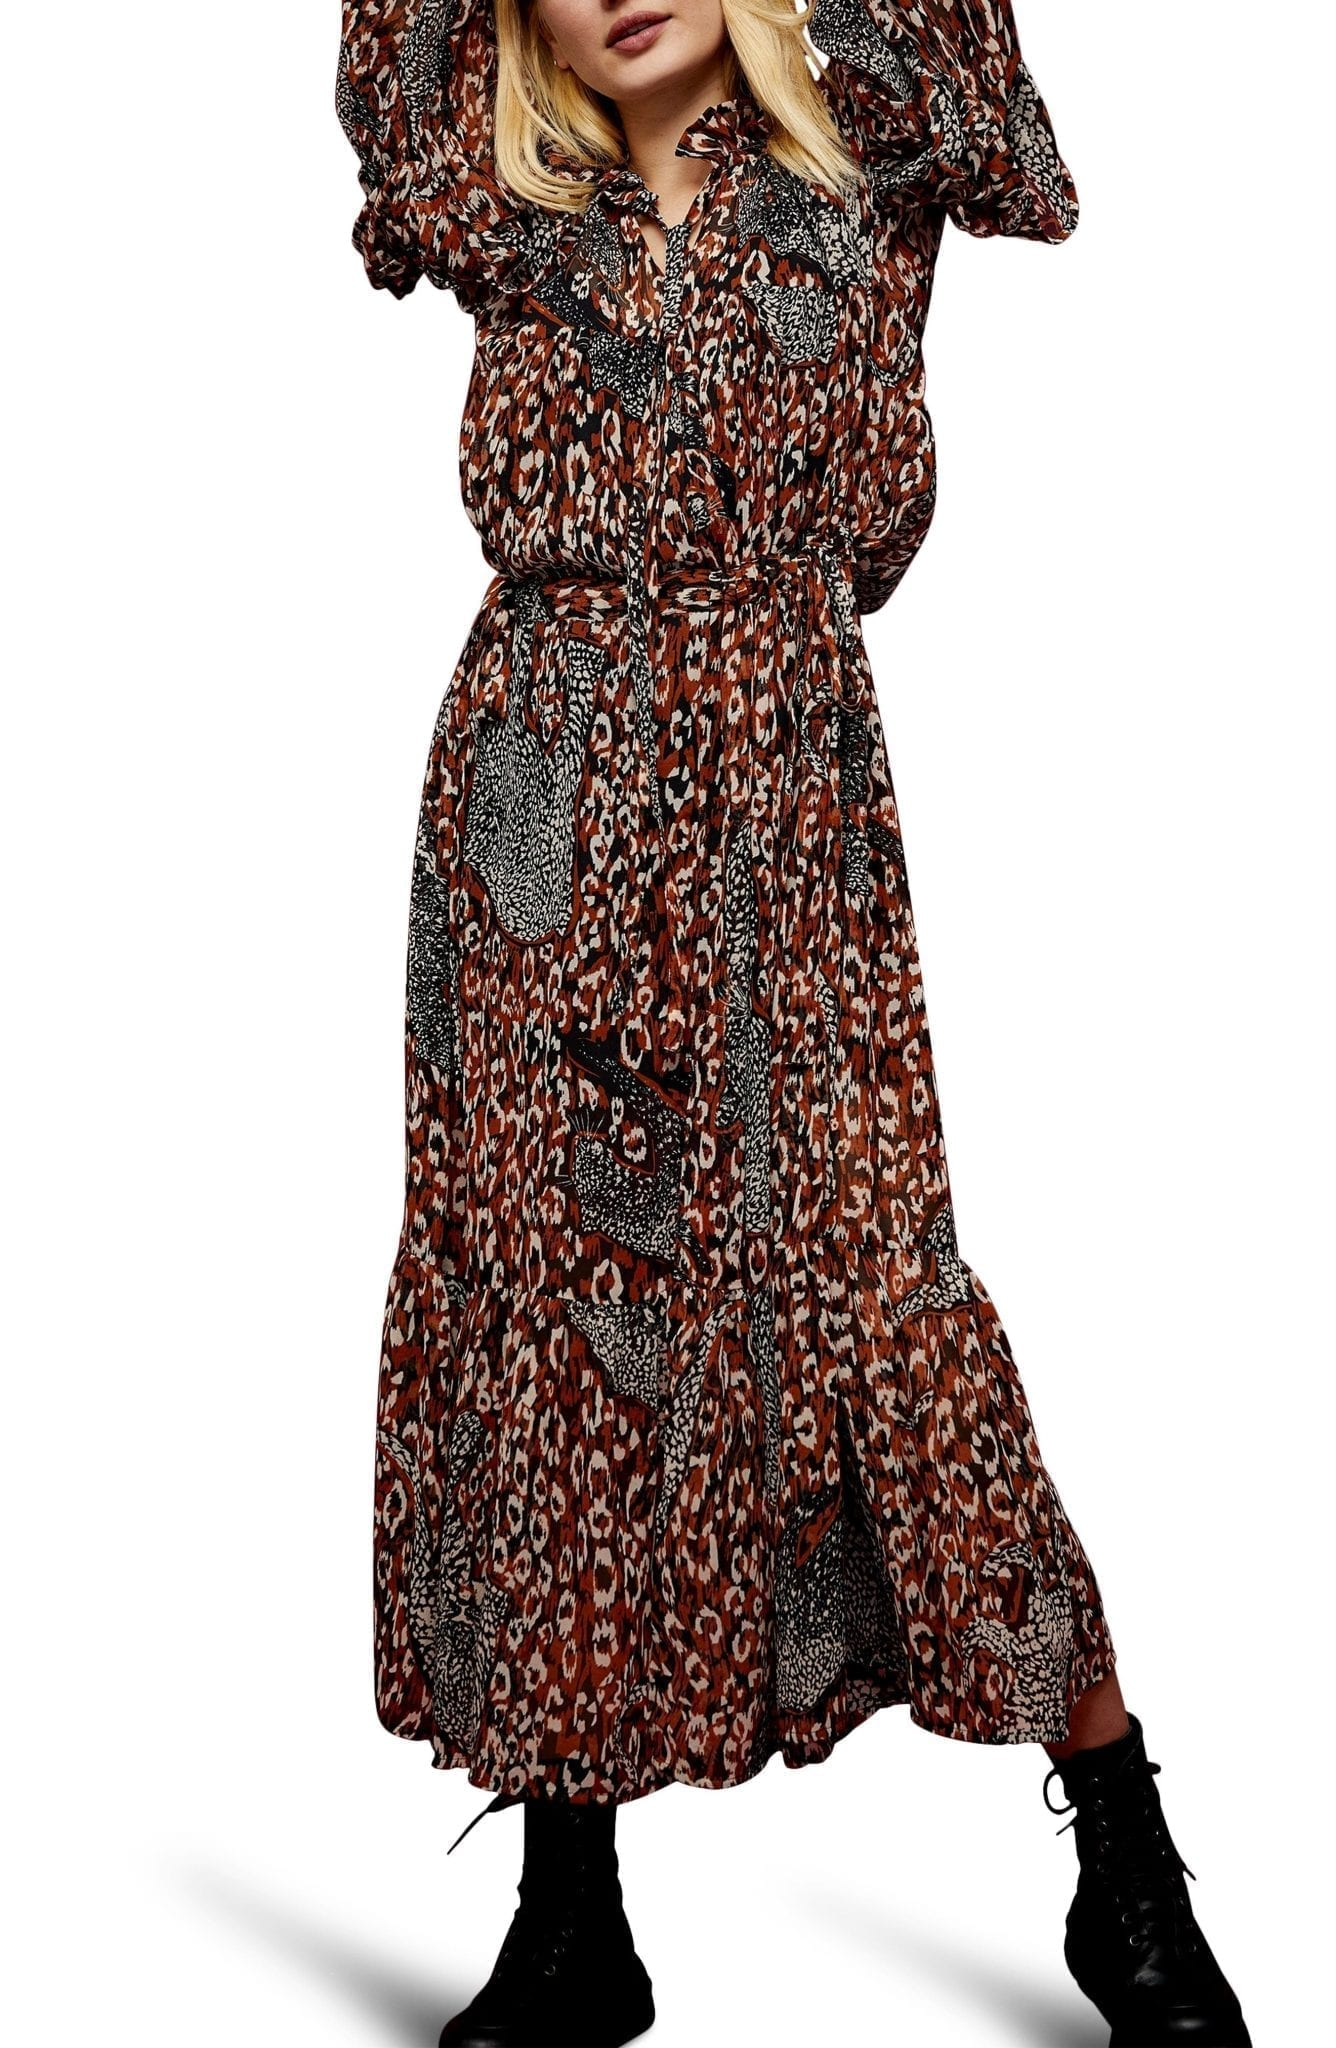 TOPSHOP Idol Leopard Maxi Dress